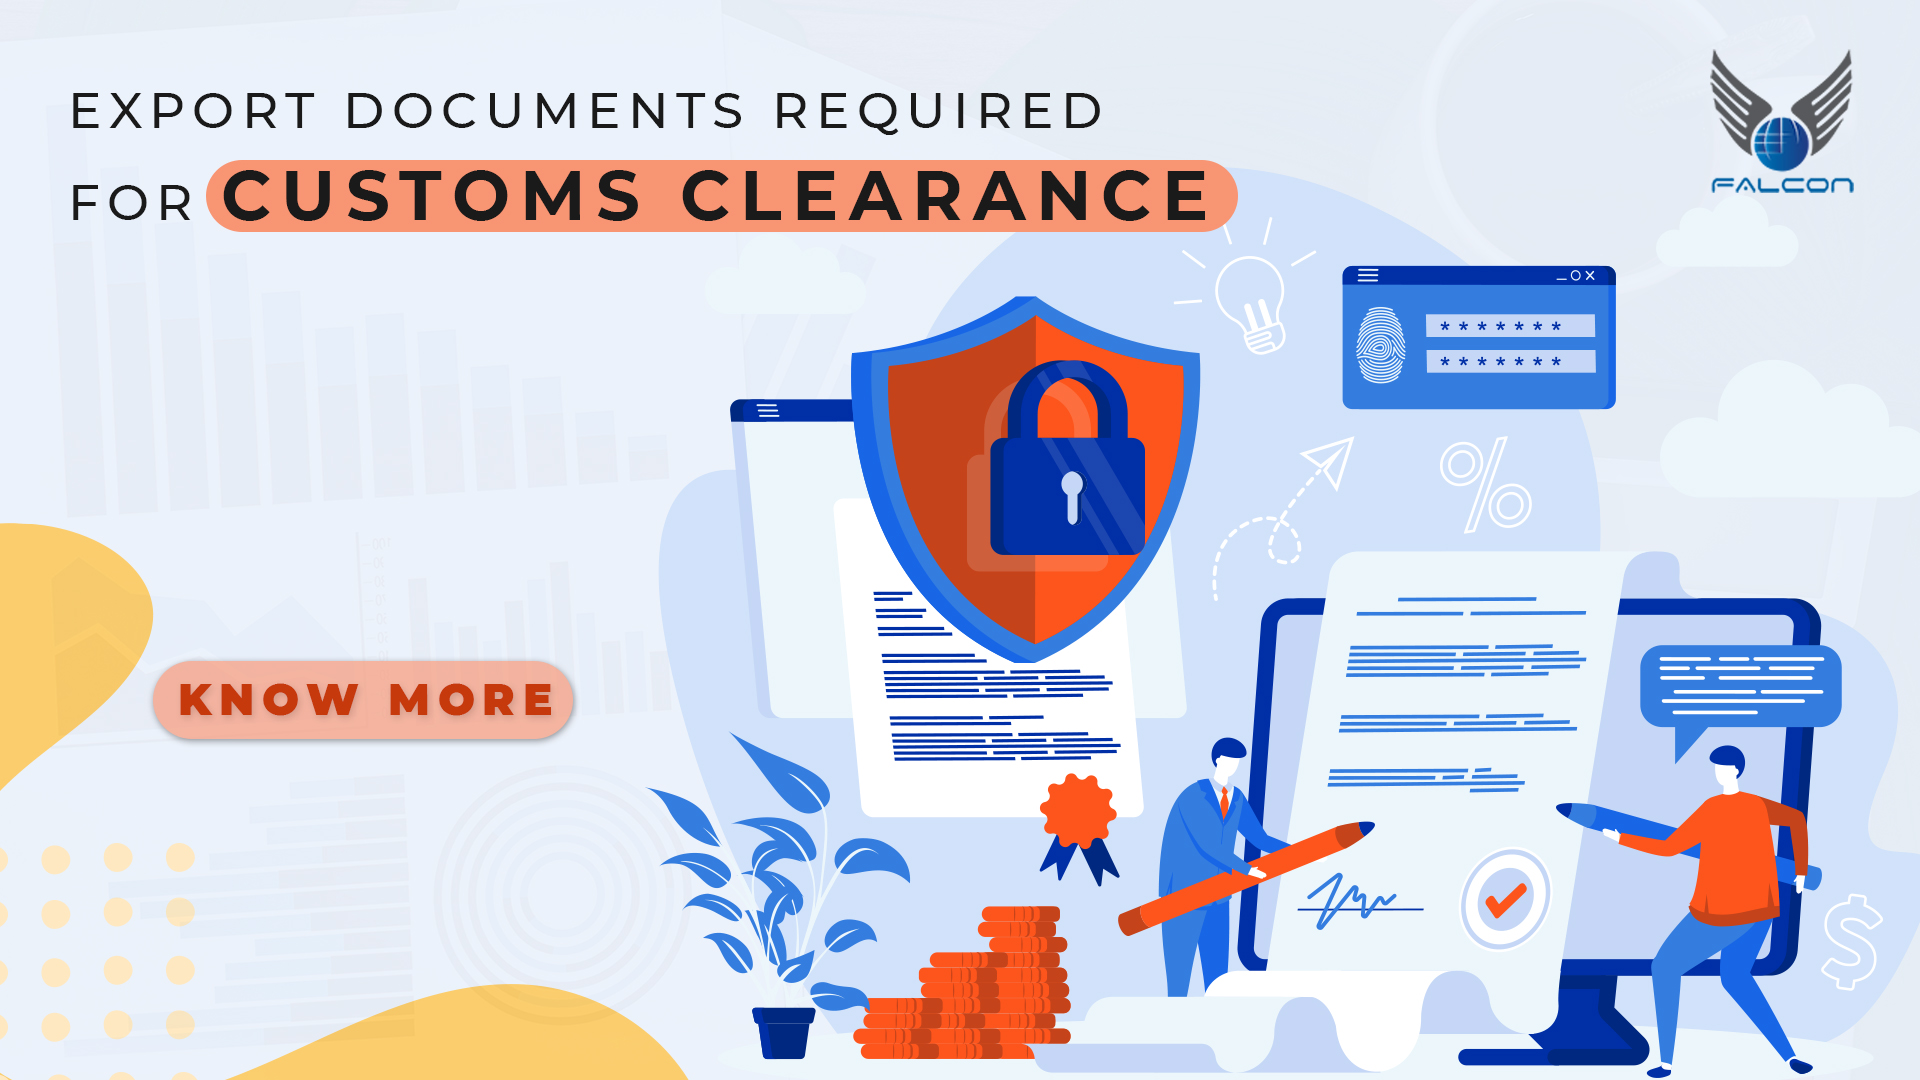 What Export Documents Required For Customs Clearance In India